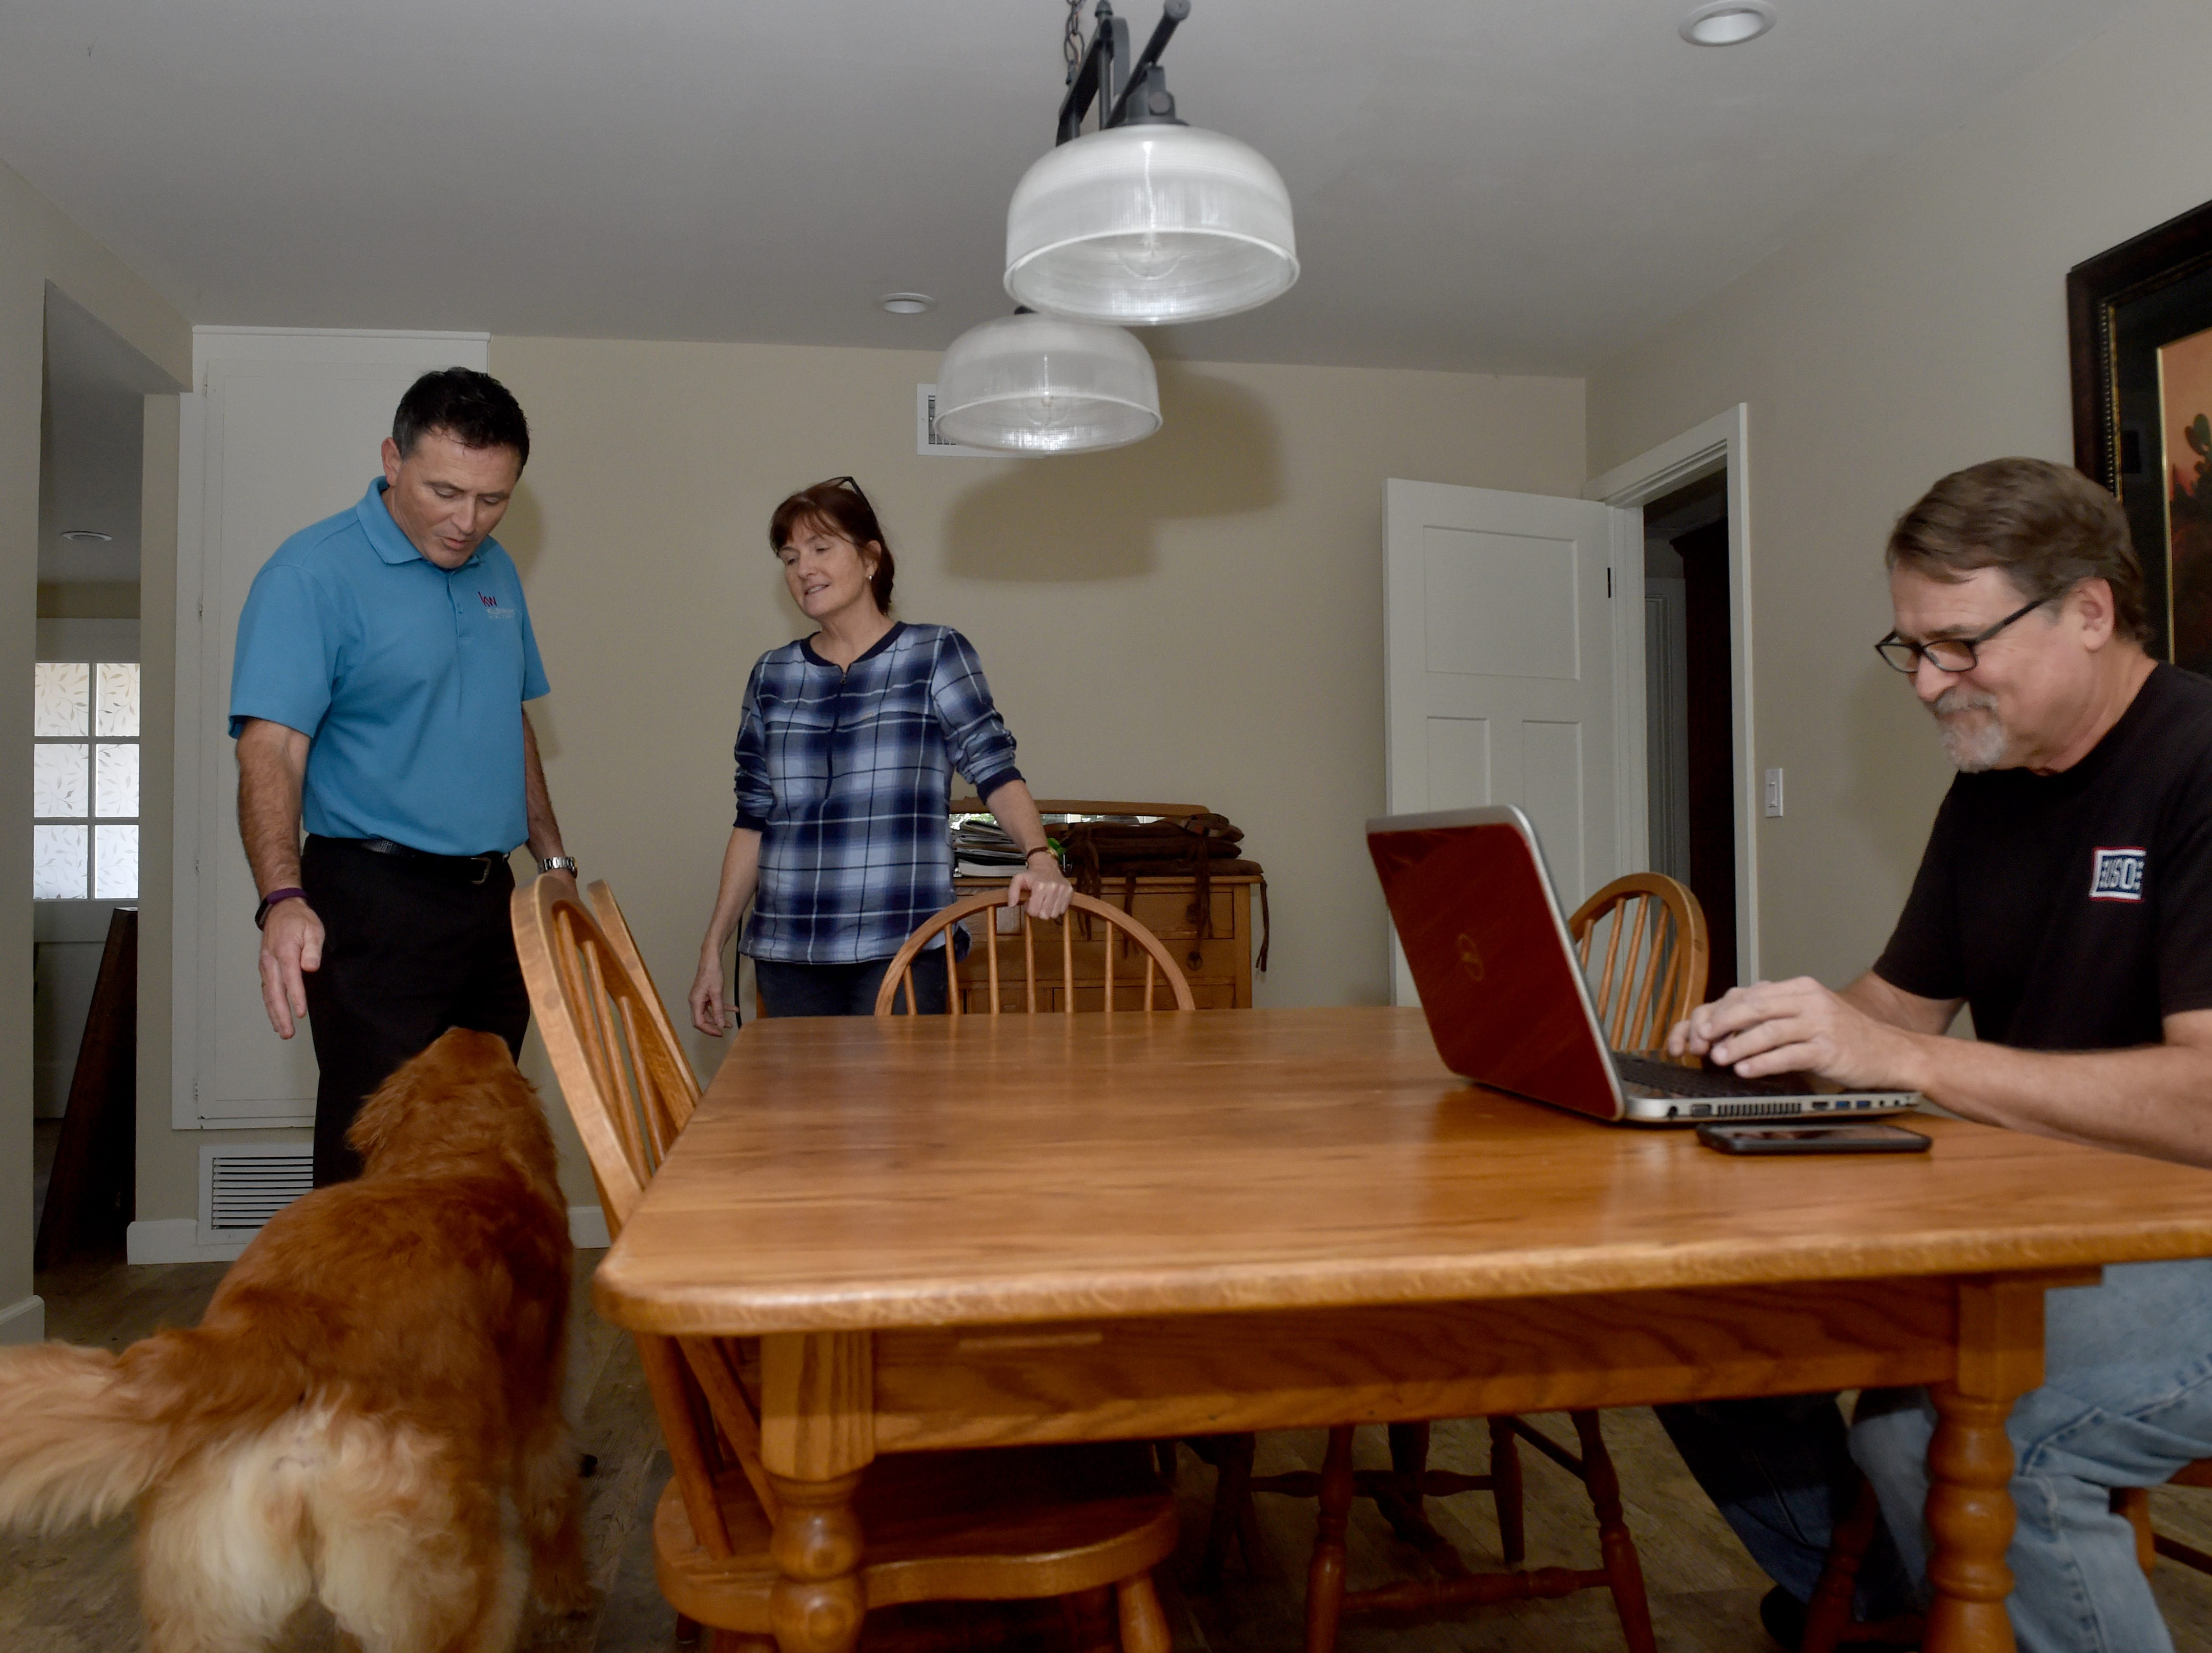 Jeff Landau, a Simi Valley real estate agent, speaks with clients Kevin and Barbara Siminski as he is greeted by the family dog Molly in their Thousand Oaks home.